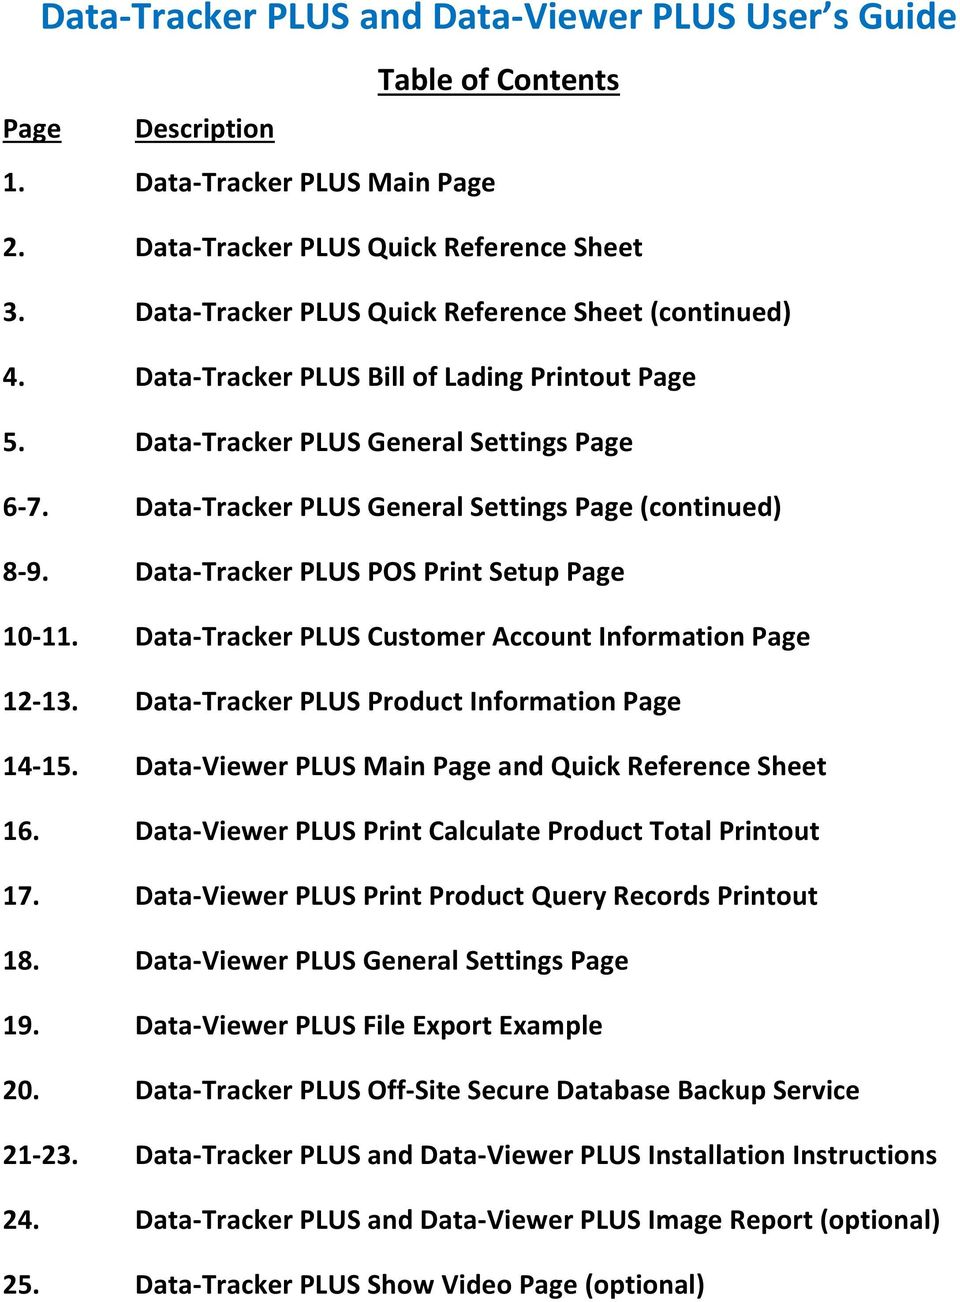 Data-Tracker PLUS General Settings Page (continued) 8-9. Data-Tracker PLUS POS Print Setup Page 10-11. Data-Tracker PLUS Customer Account Information Page 12-13.